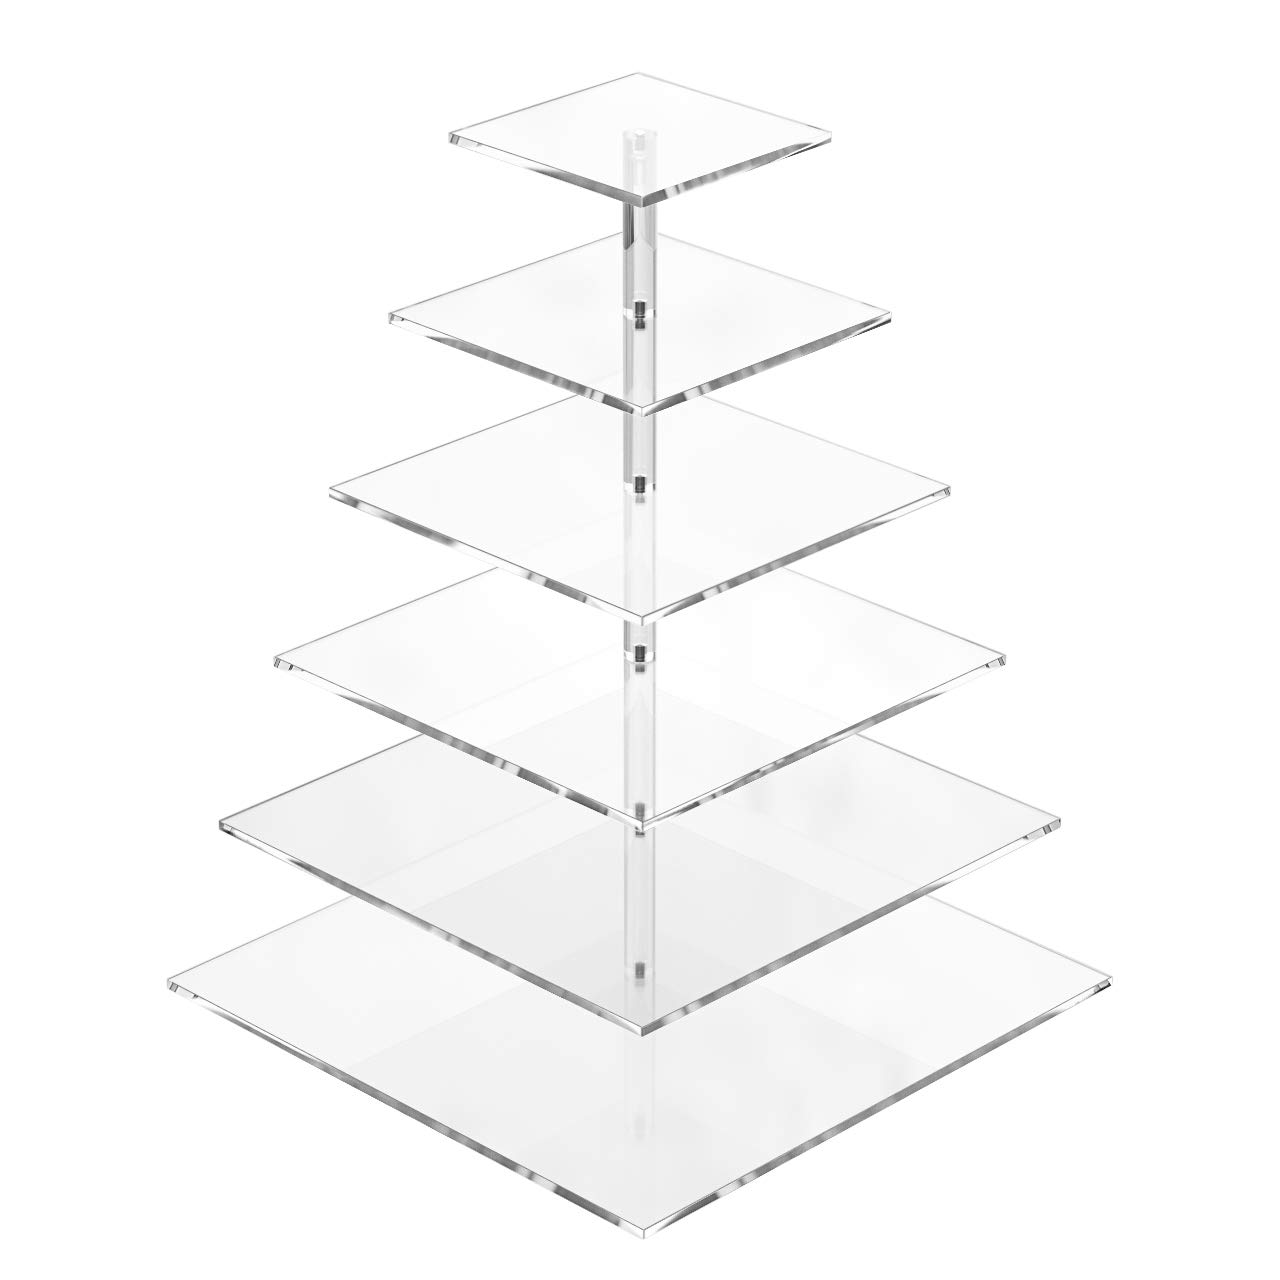 6 Tiered Acrylic Cupcake Stand Square Cupcake Towers and Tier Stand Clear Cake Holder Pastry Serving Platter for Wedding Holidays Buffets Birthday Party by HIIMIEI